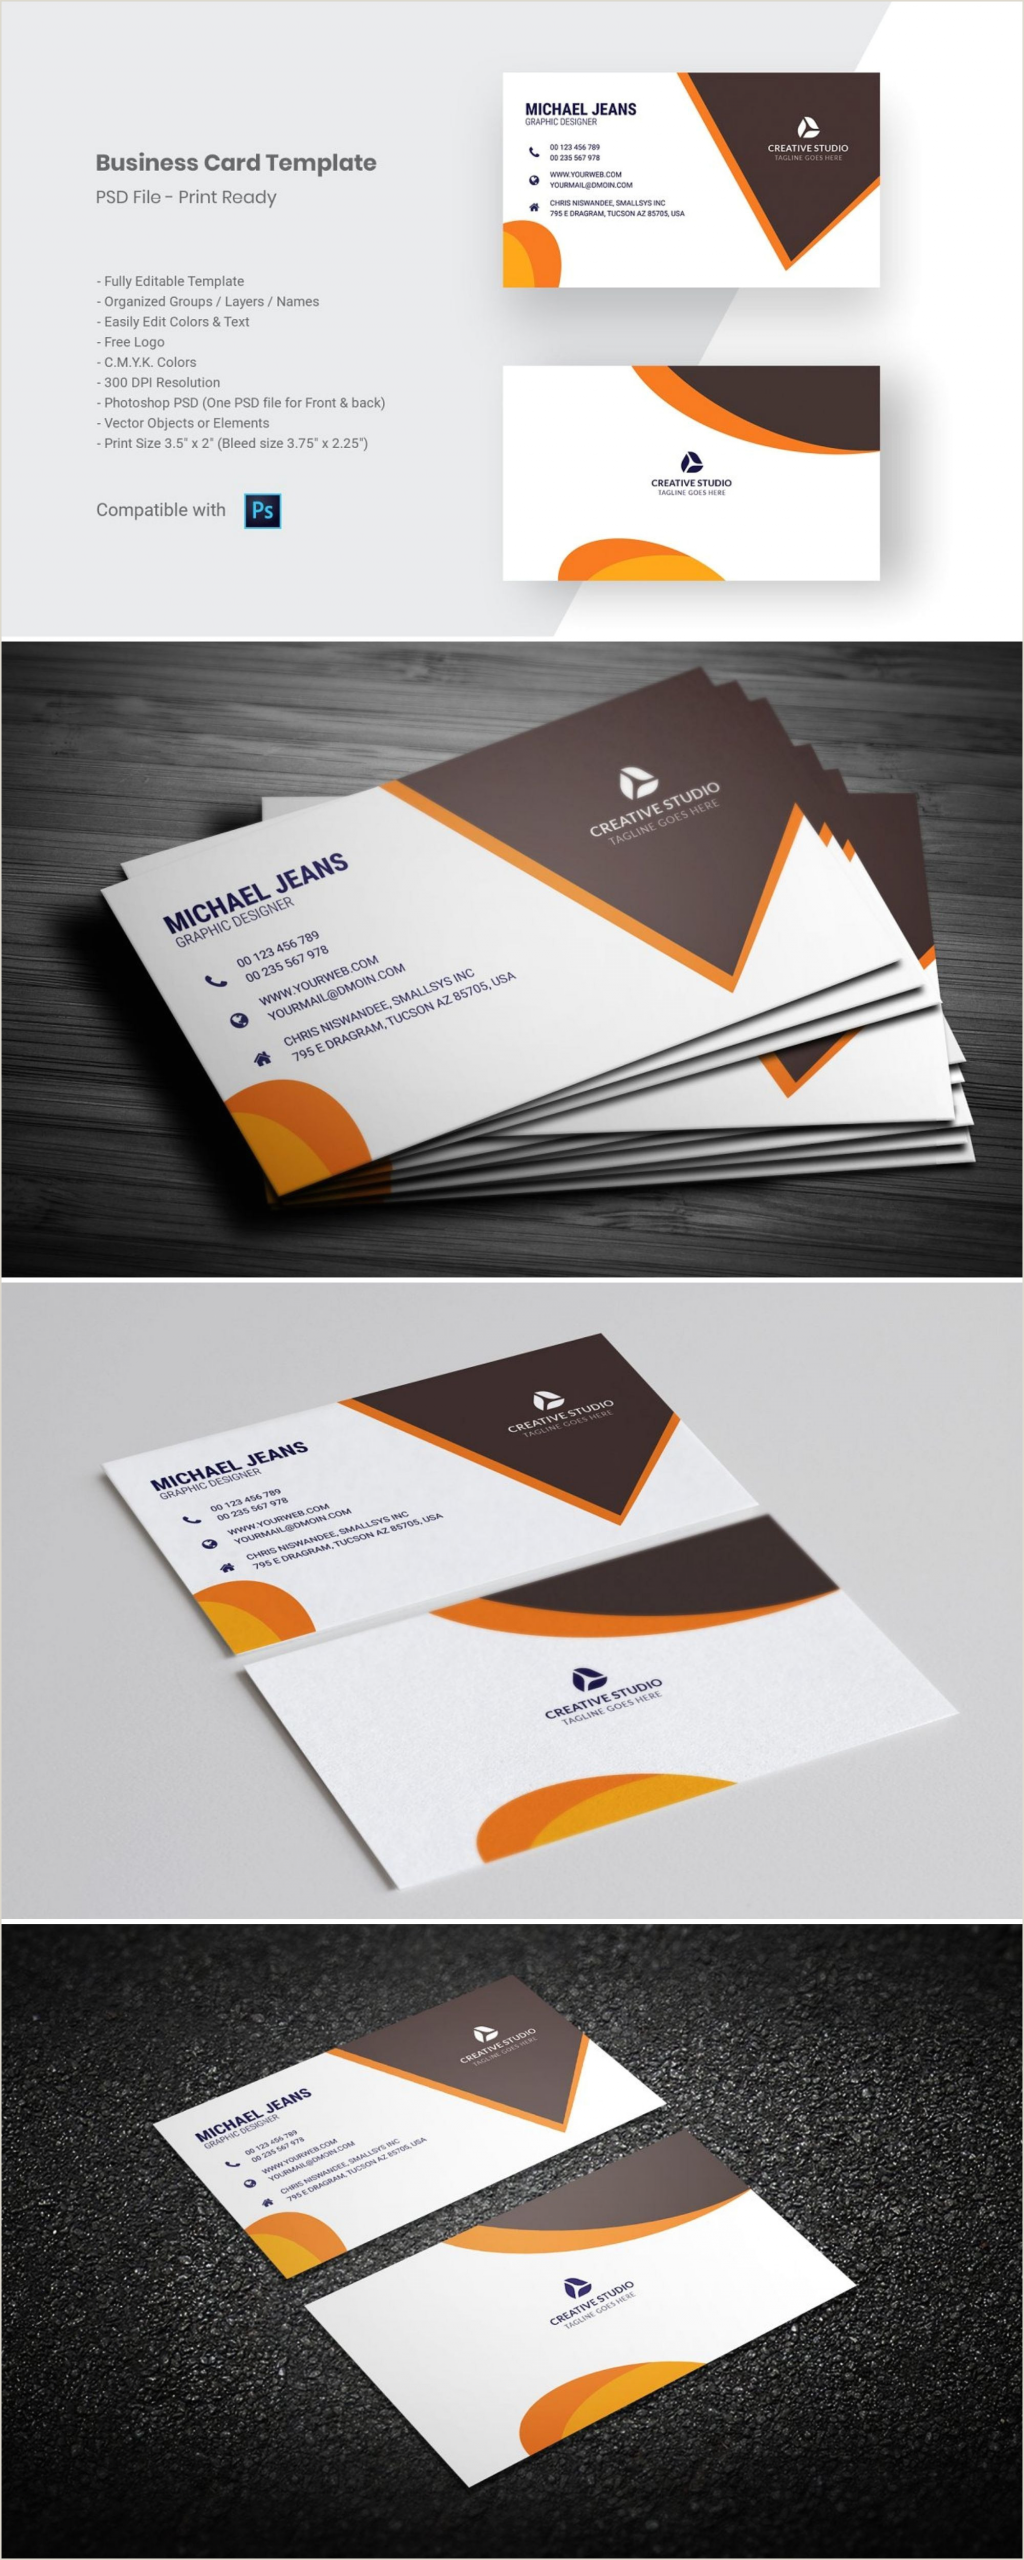 How To Write A Business Card Modern Business Card Template